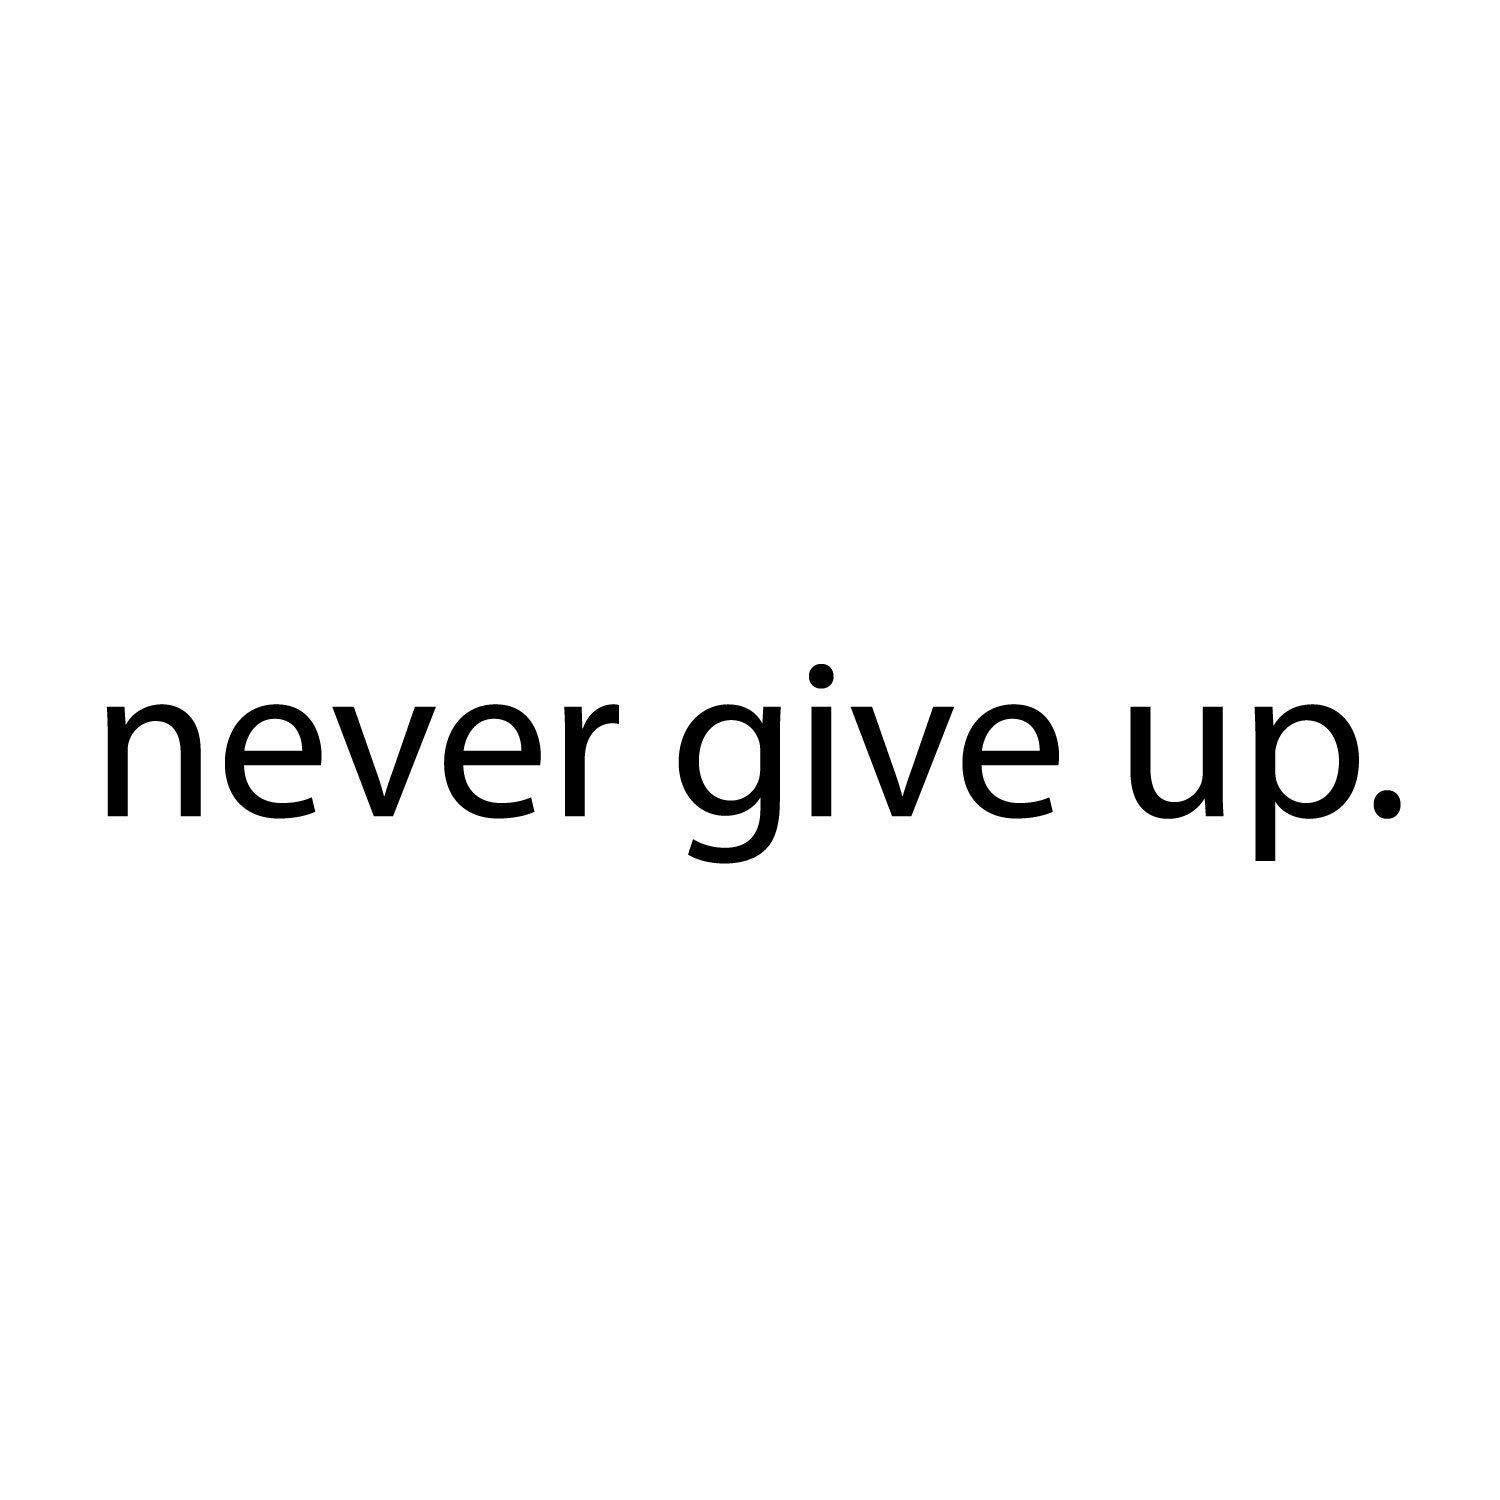 Never Give Up.. Over the Door Vinyl Wall Decal Sticker Art by Imprinted Designs (Image #4)